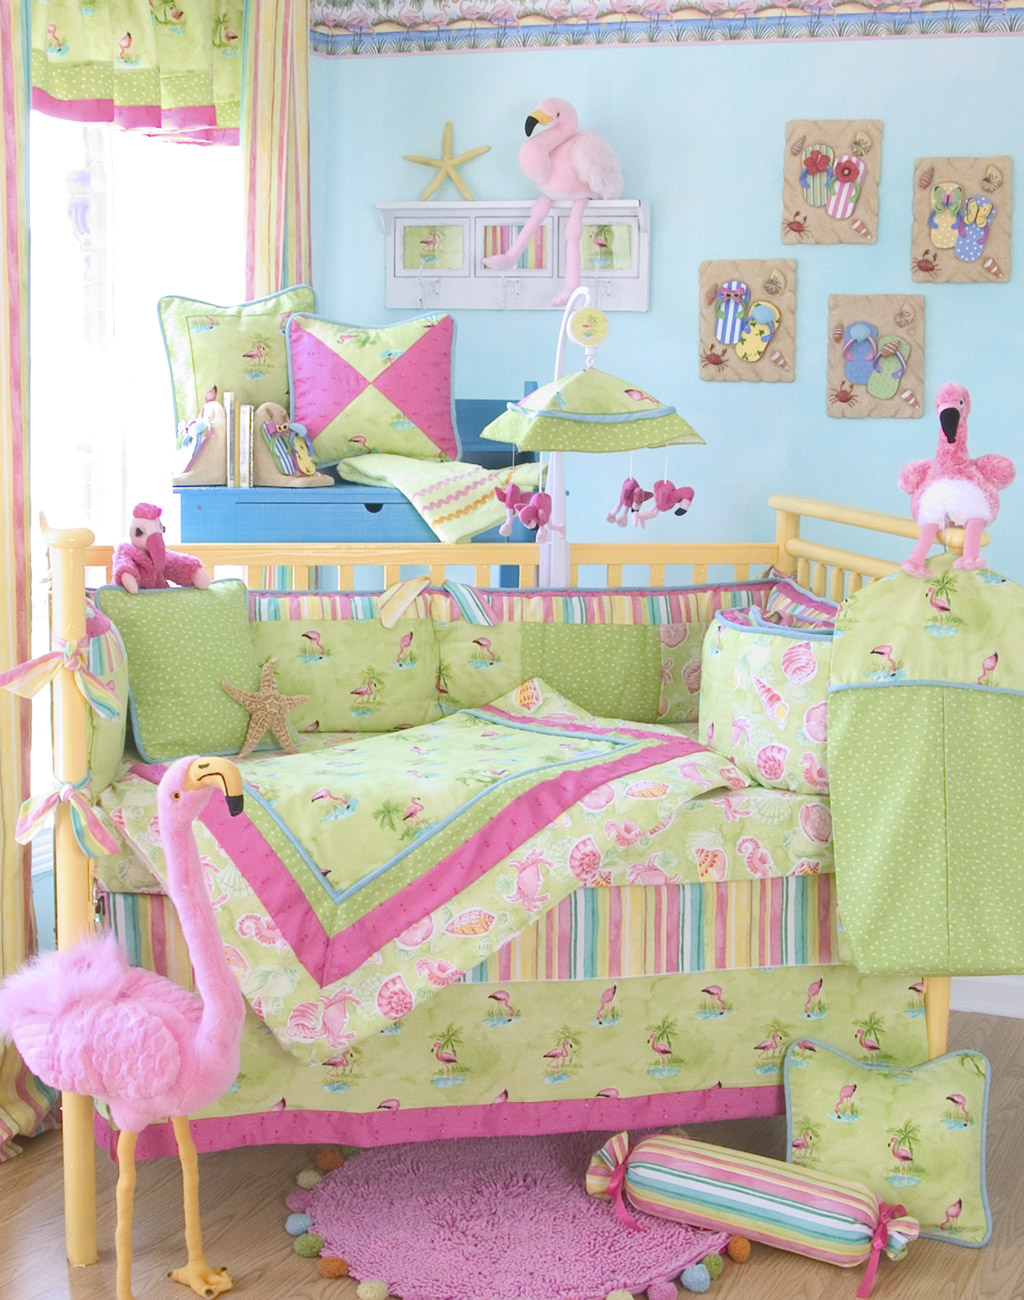 Modern home interior design baby bedding Baby girl bedding